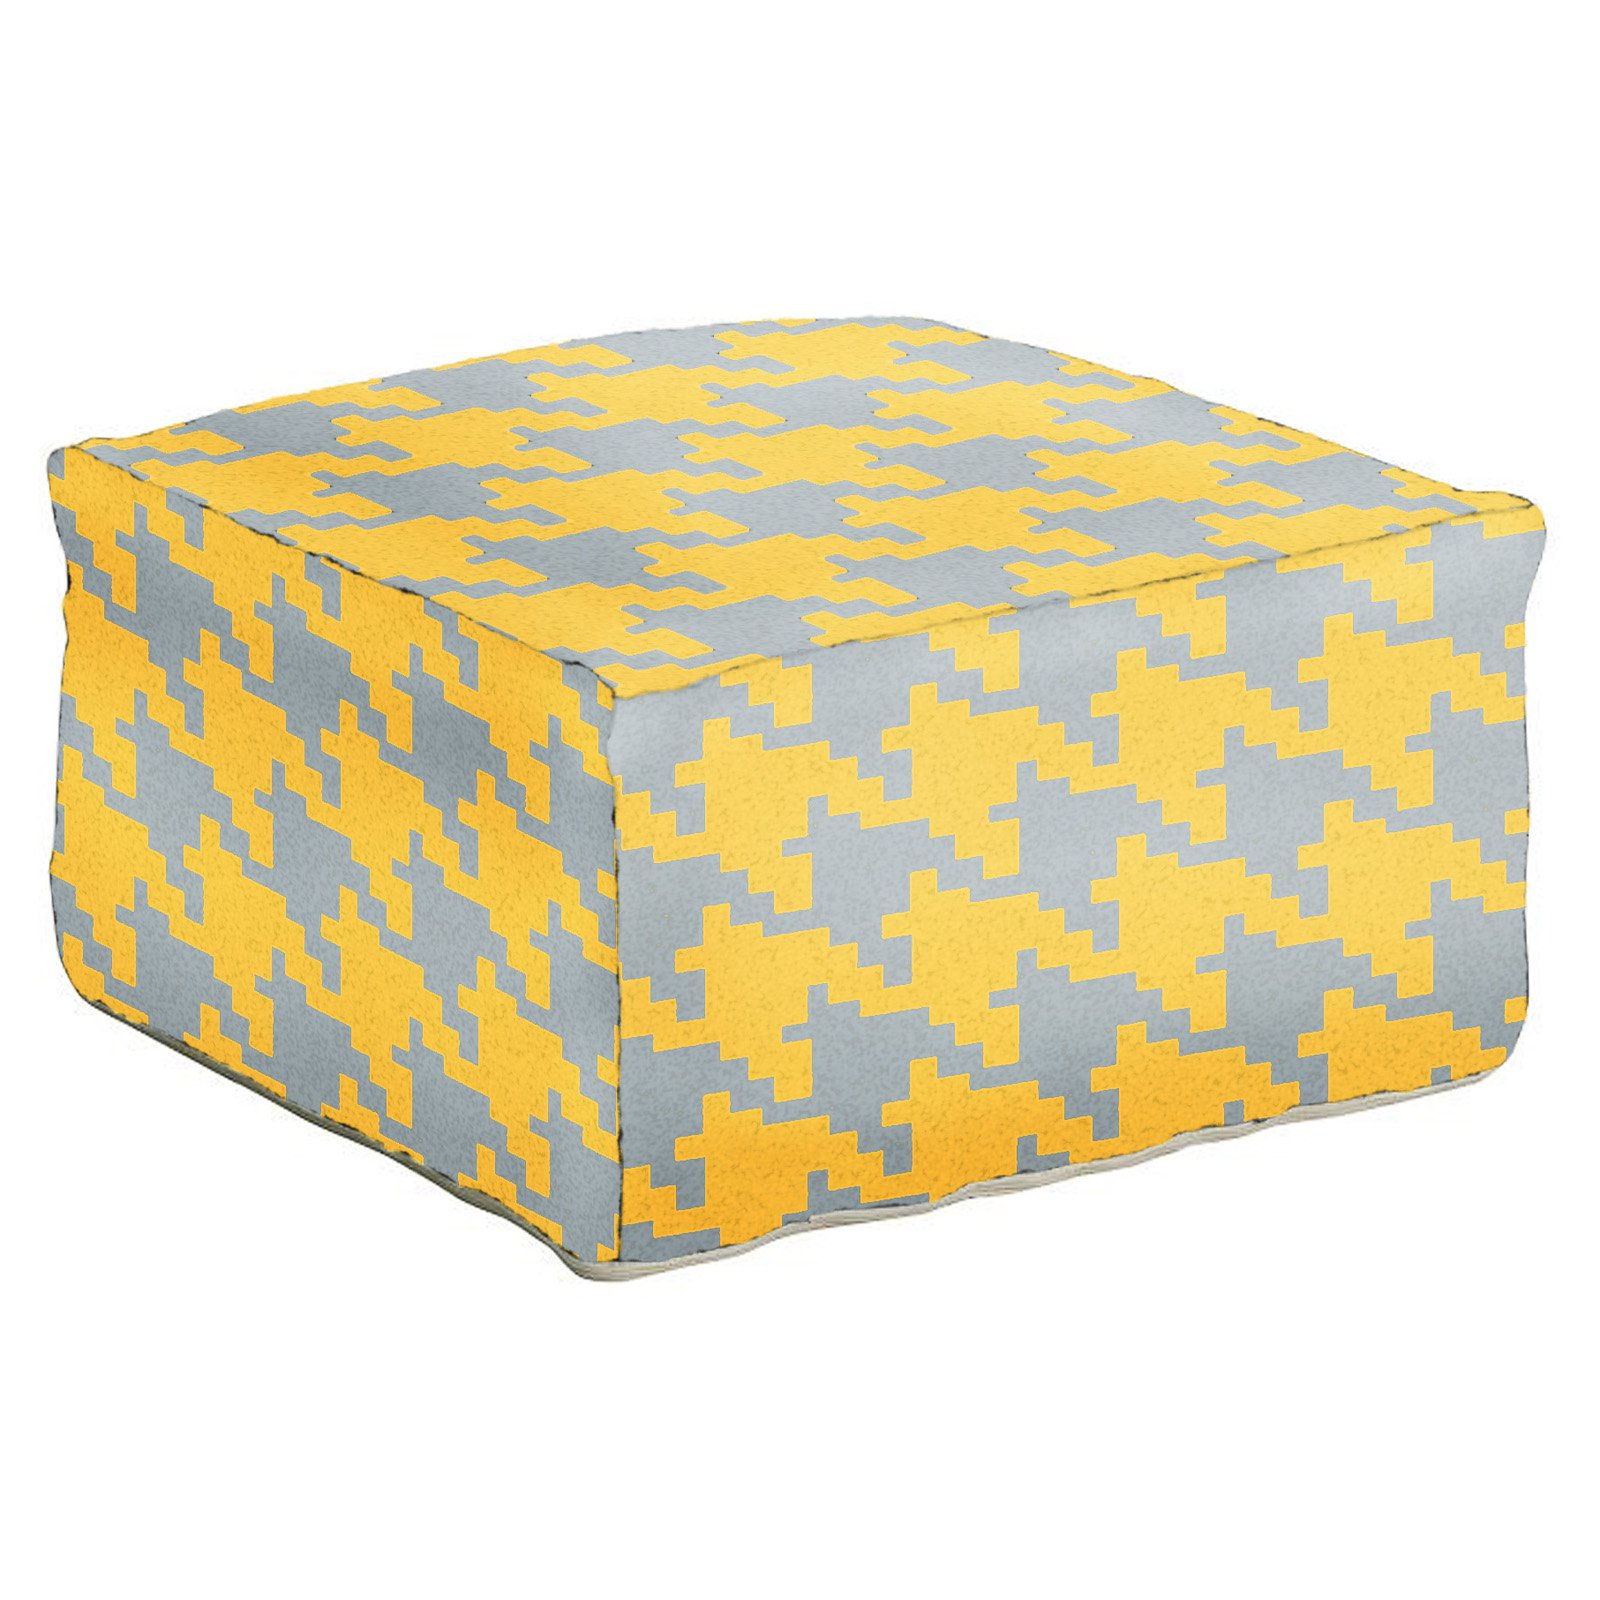 Surya 24 in. Houndstooth Square Wool Pouf by Surya Rugs